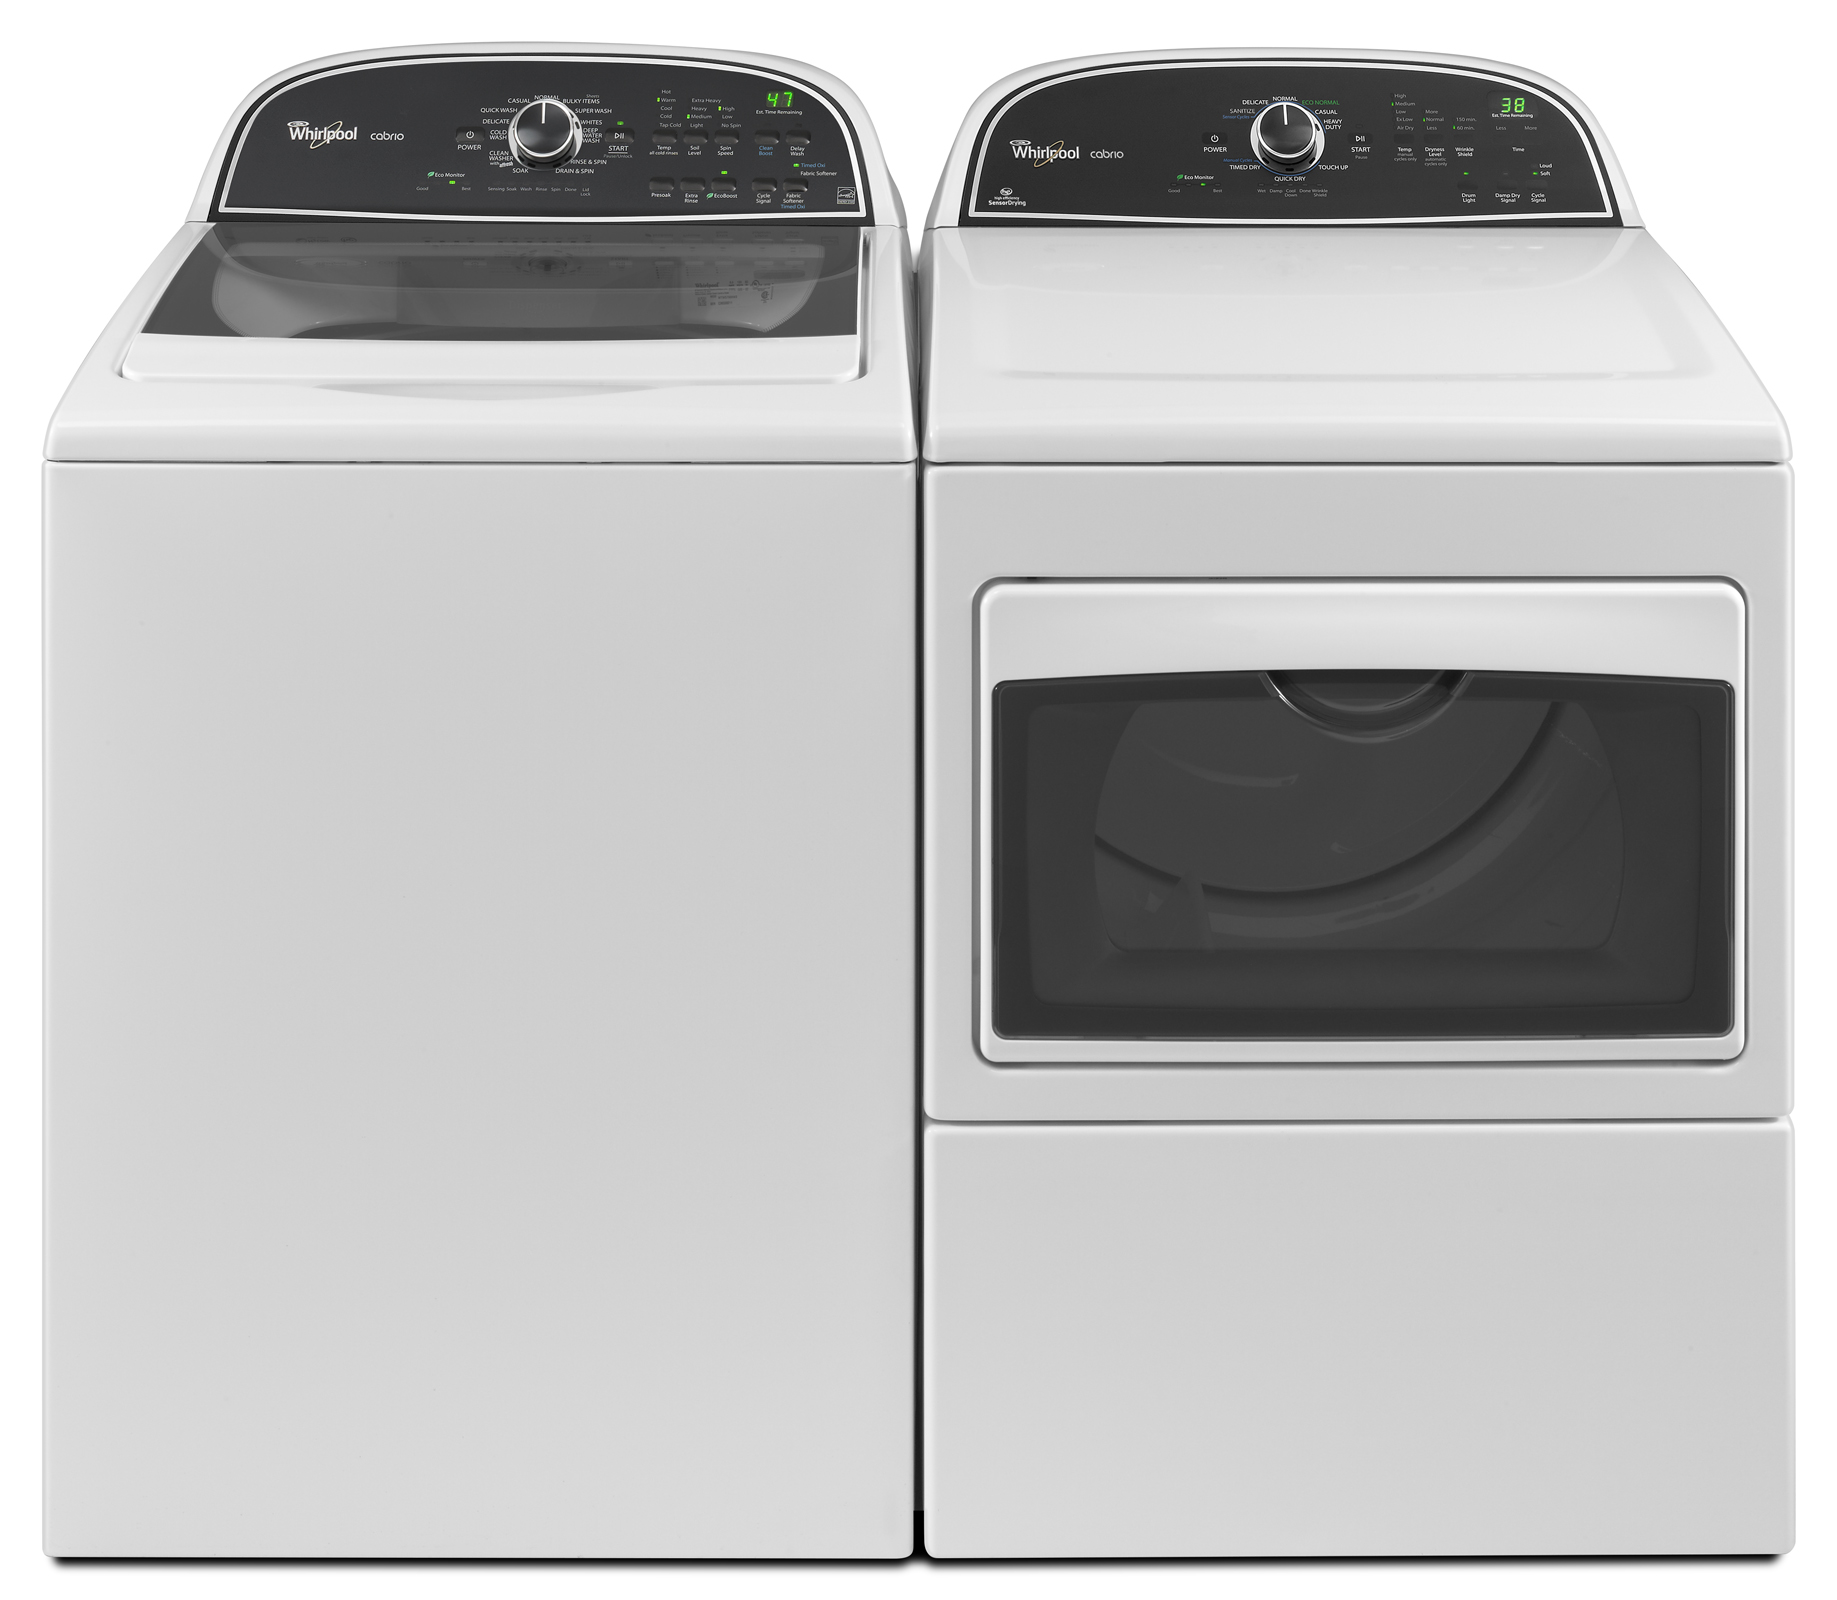 Whirlpool 7.4 cu. ft. Cabrio® Electric Dryer w/ Sanitize Cycle - White